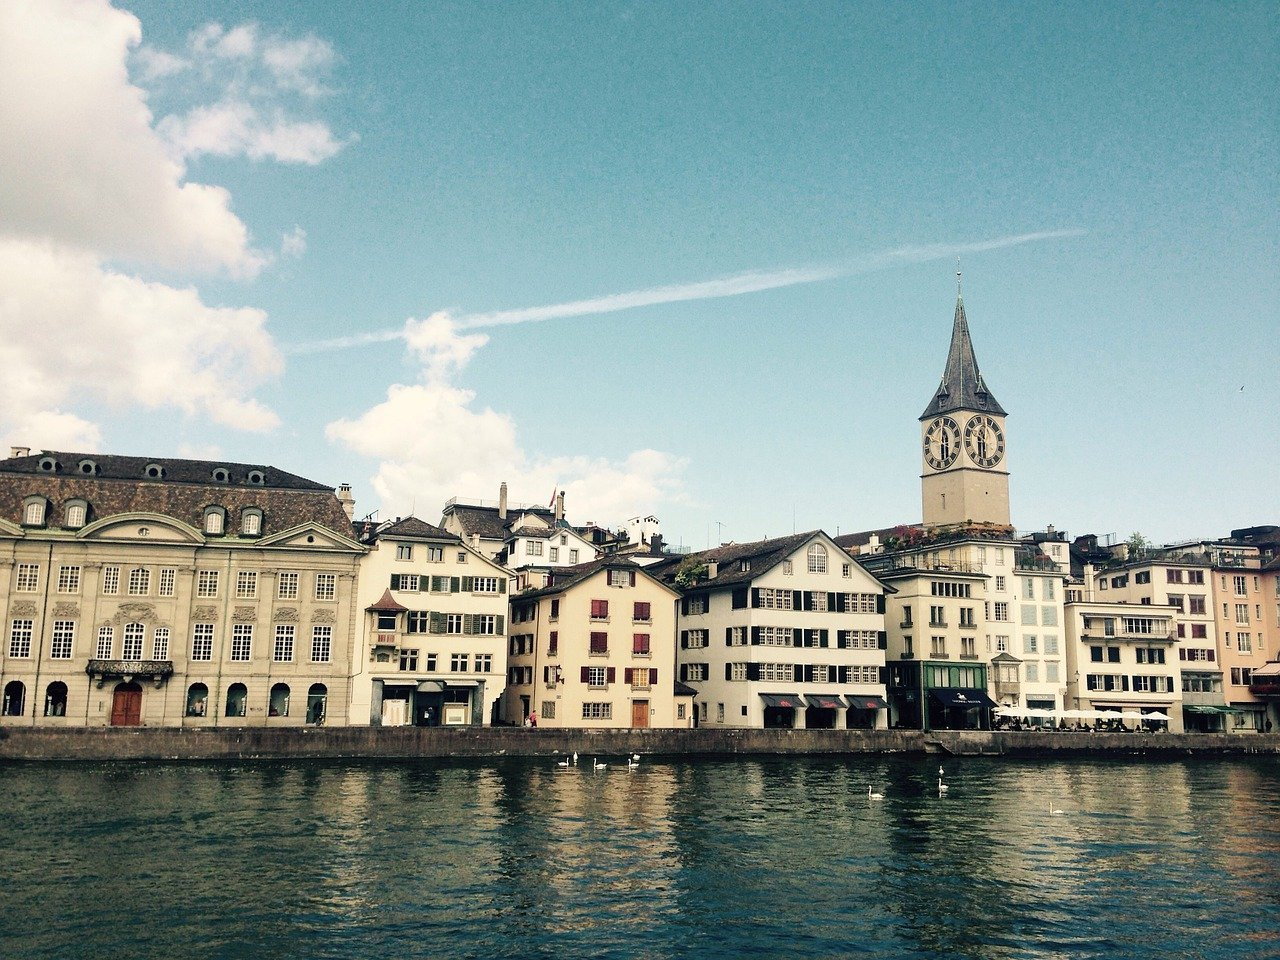 Sustainable City Guide: Things to do in Zurich Switzerland, by Anna Timbook